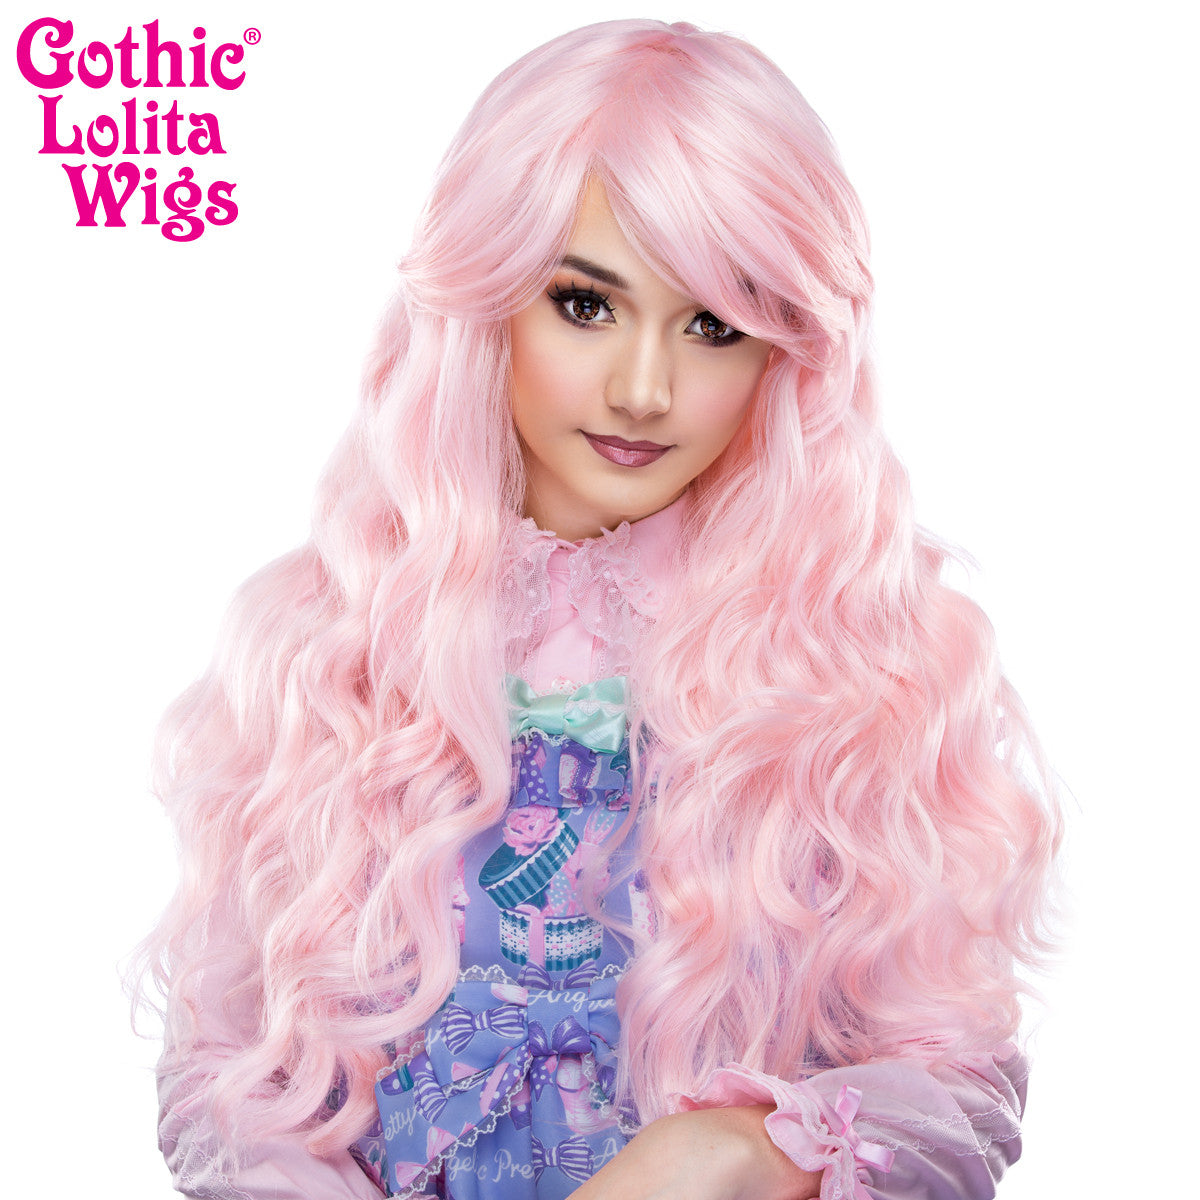 Gothic Lolita Wigs® <br> Classic Wavy Lolita™ Collection - Pink Blonde -00464